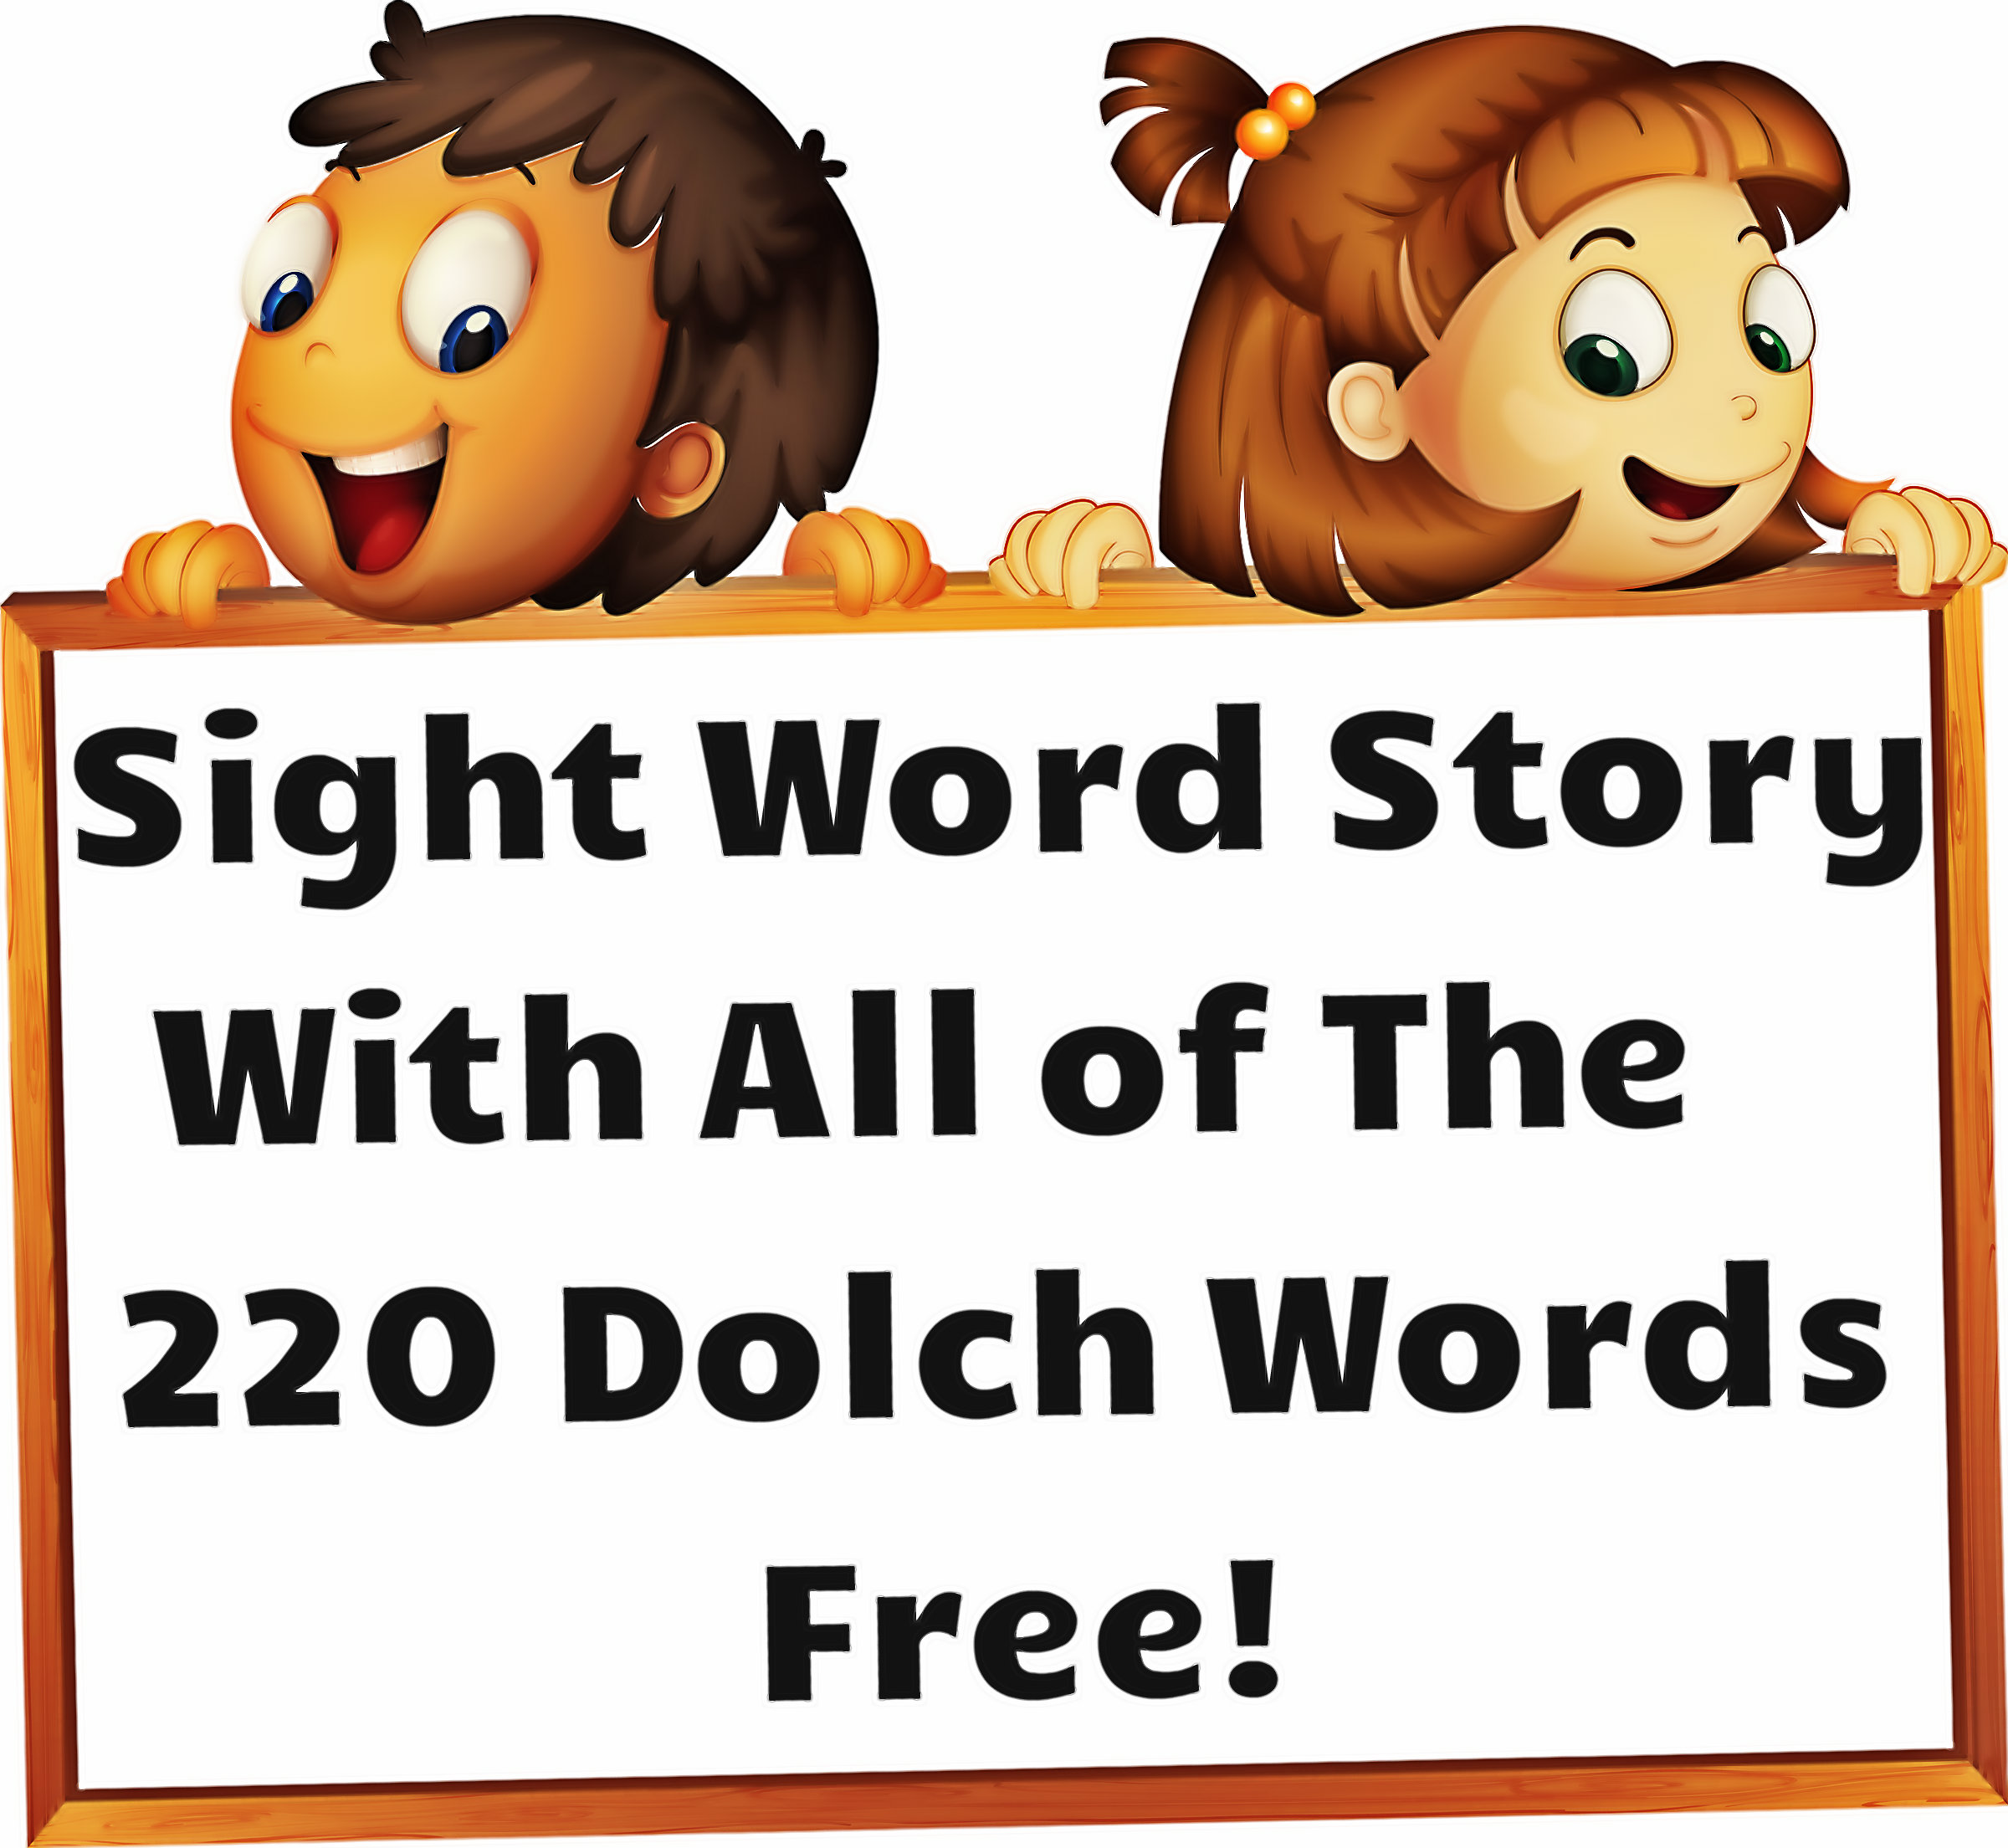 Sight Word Story with all of the 220 Dolch Sight Words